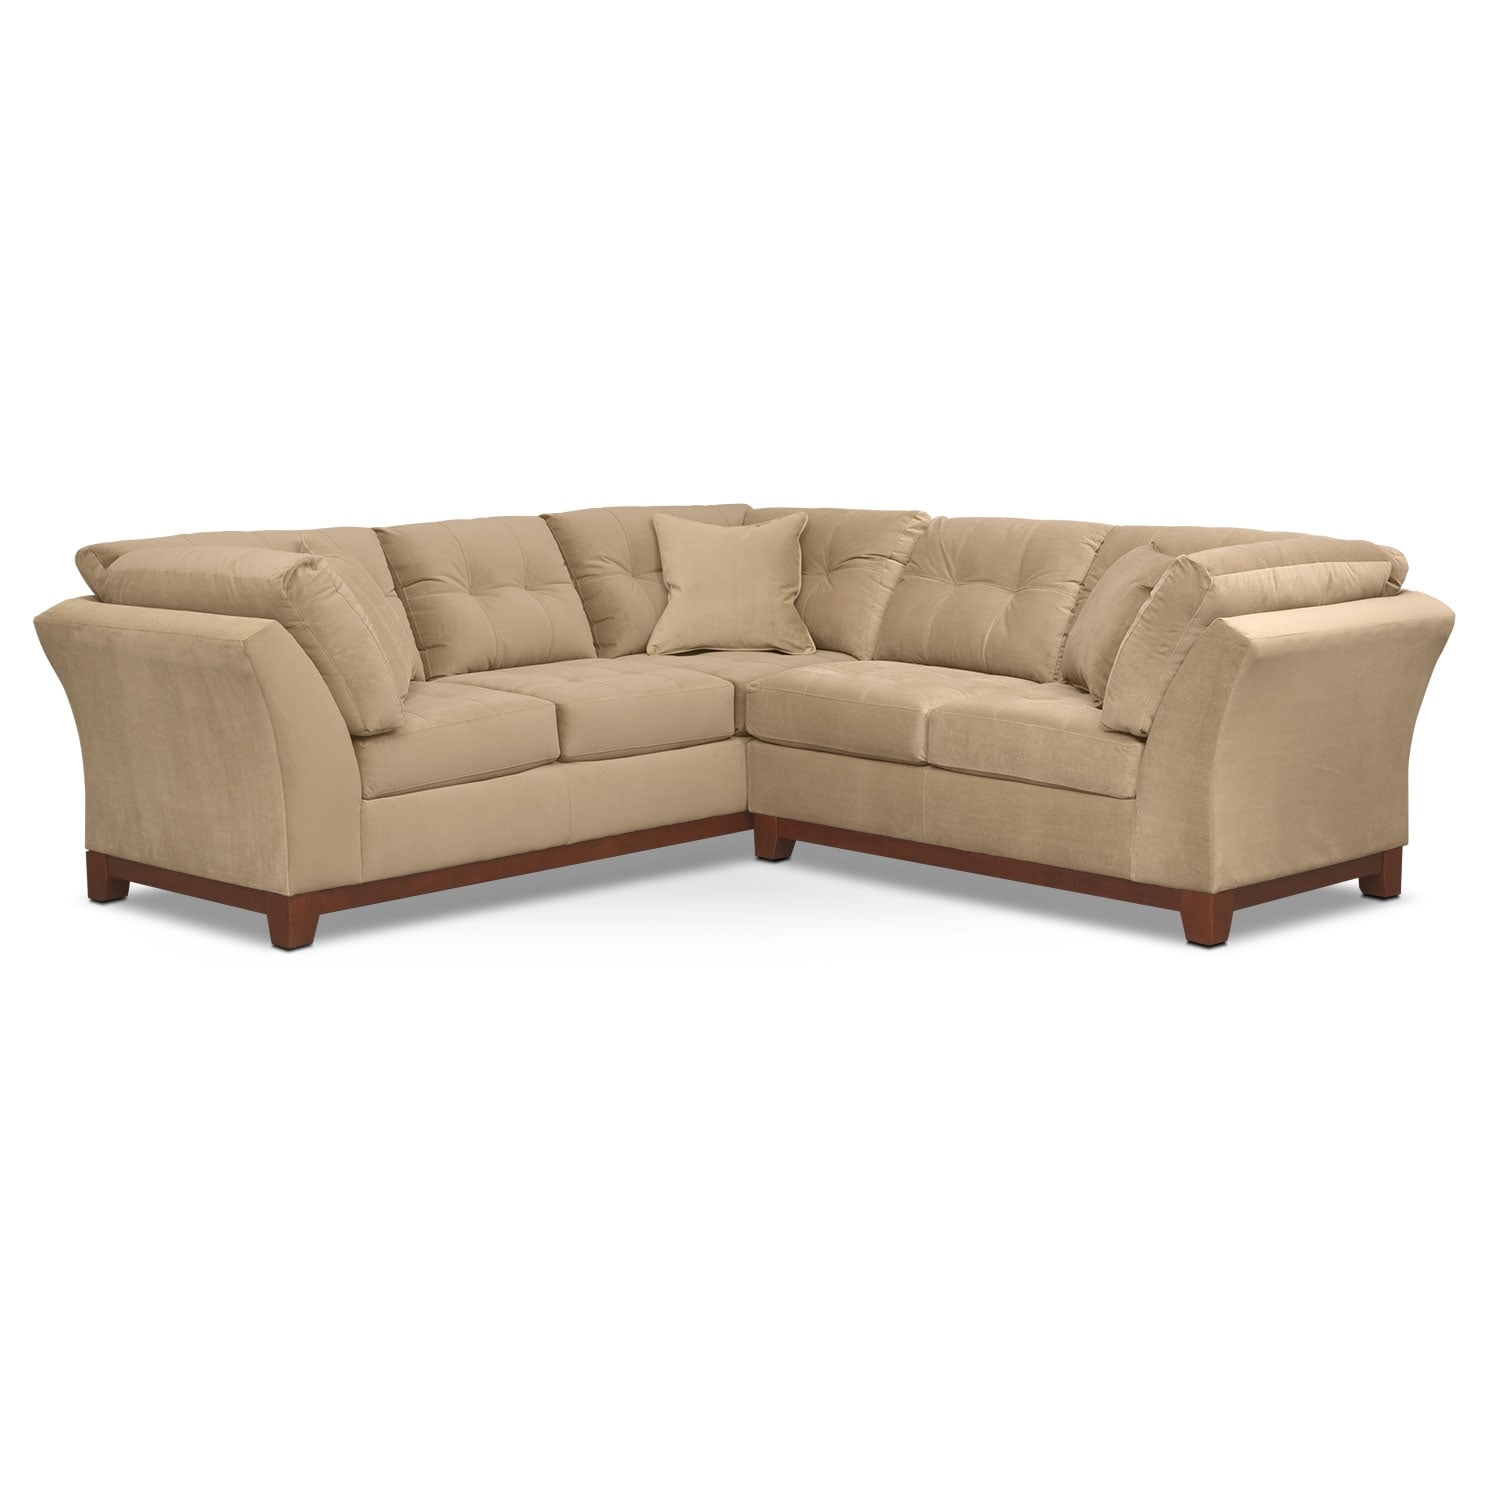 Living Room Furniture - Solace Cocoa II 2 Pc. Sectional (Alternate II Reverse)